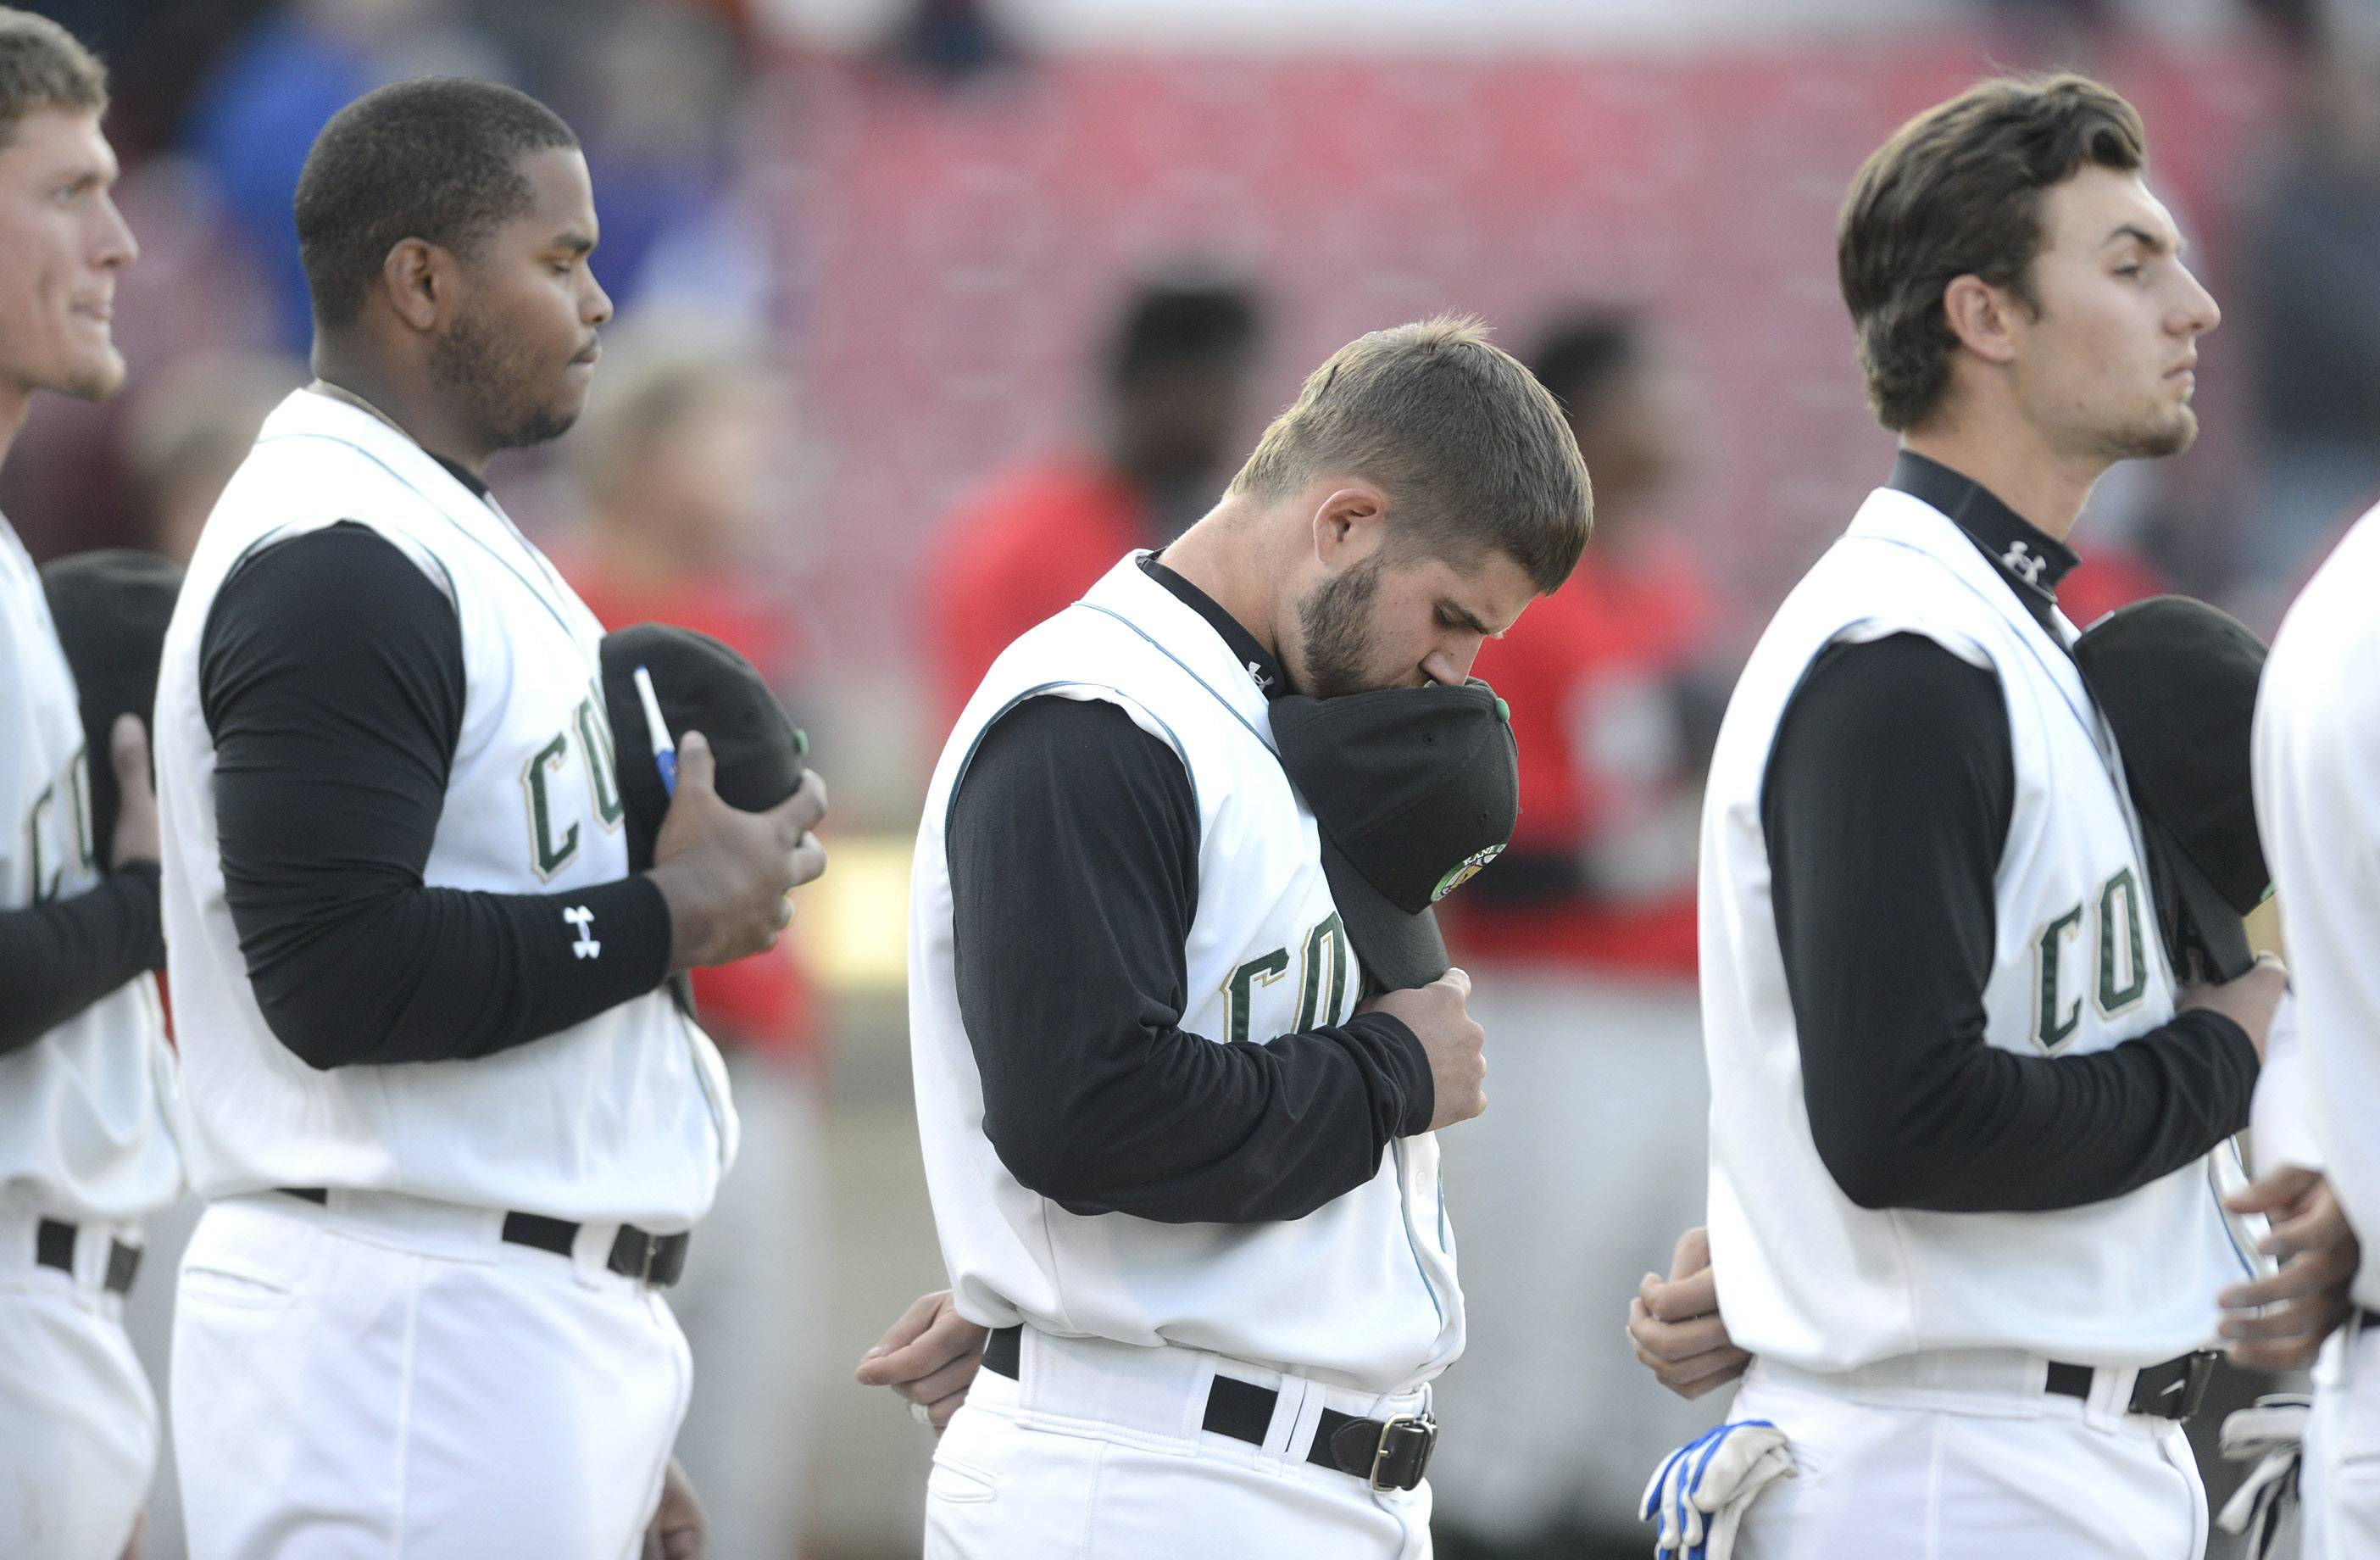 Kane County Cougars third baseman Ben Carhart bows his head as the National Anthem is played.